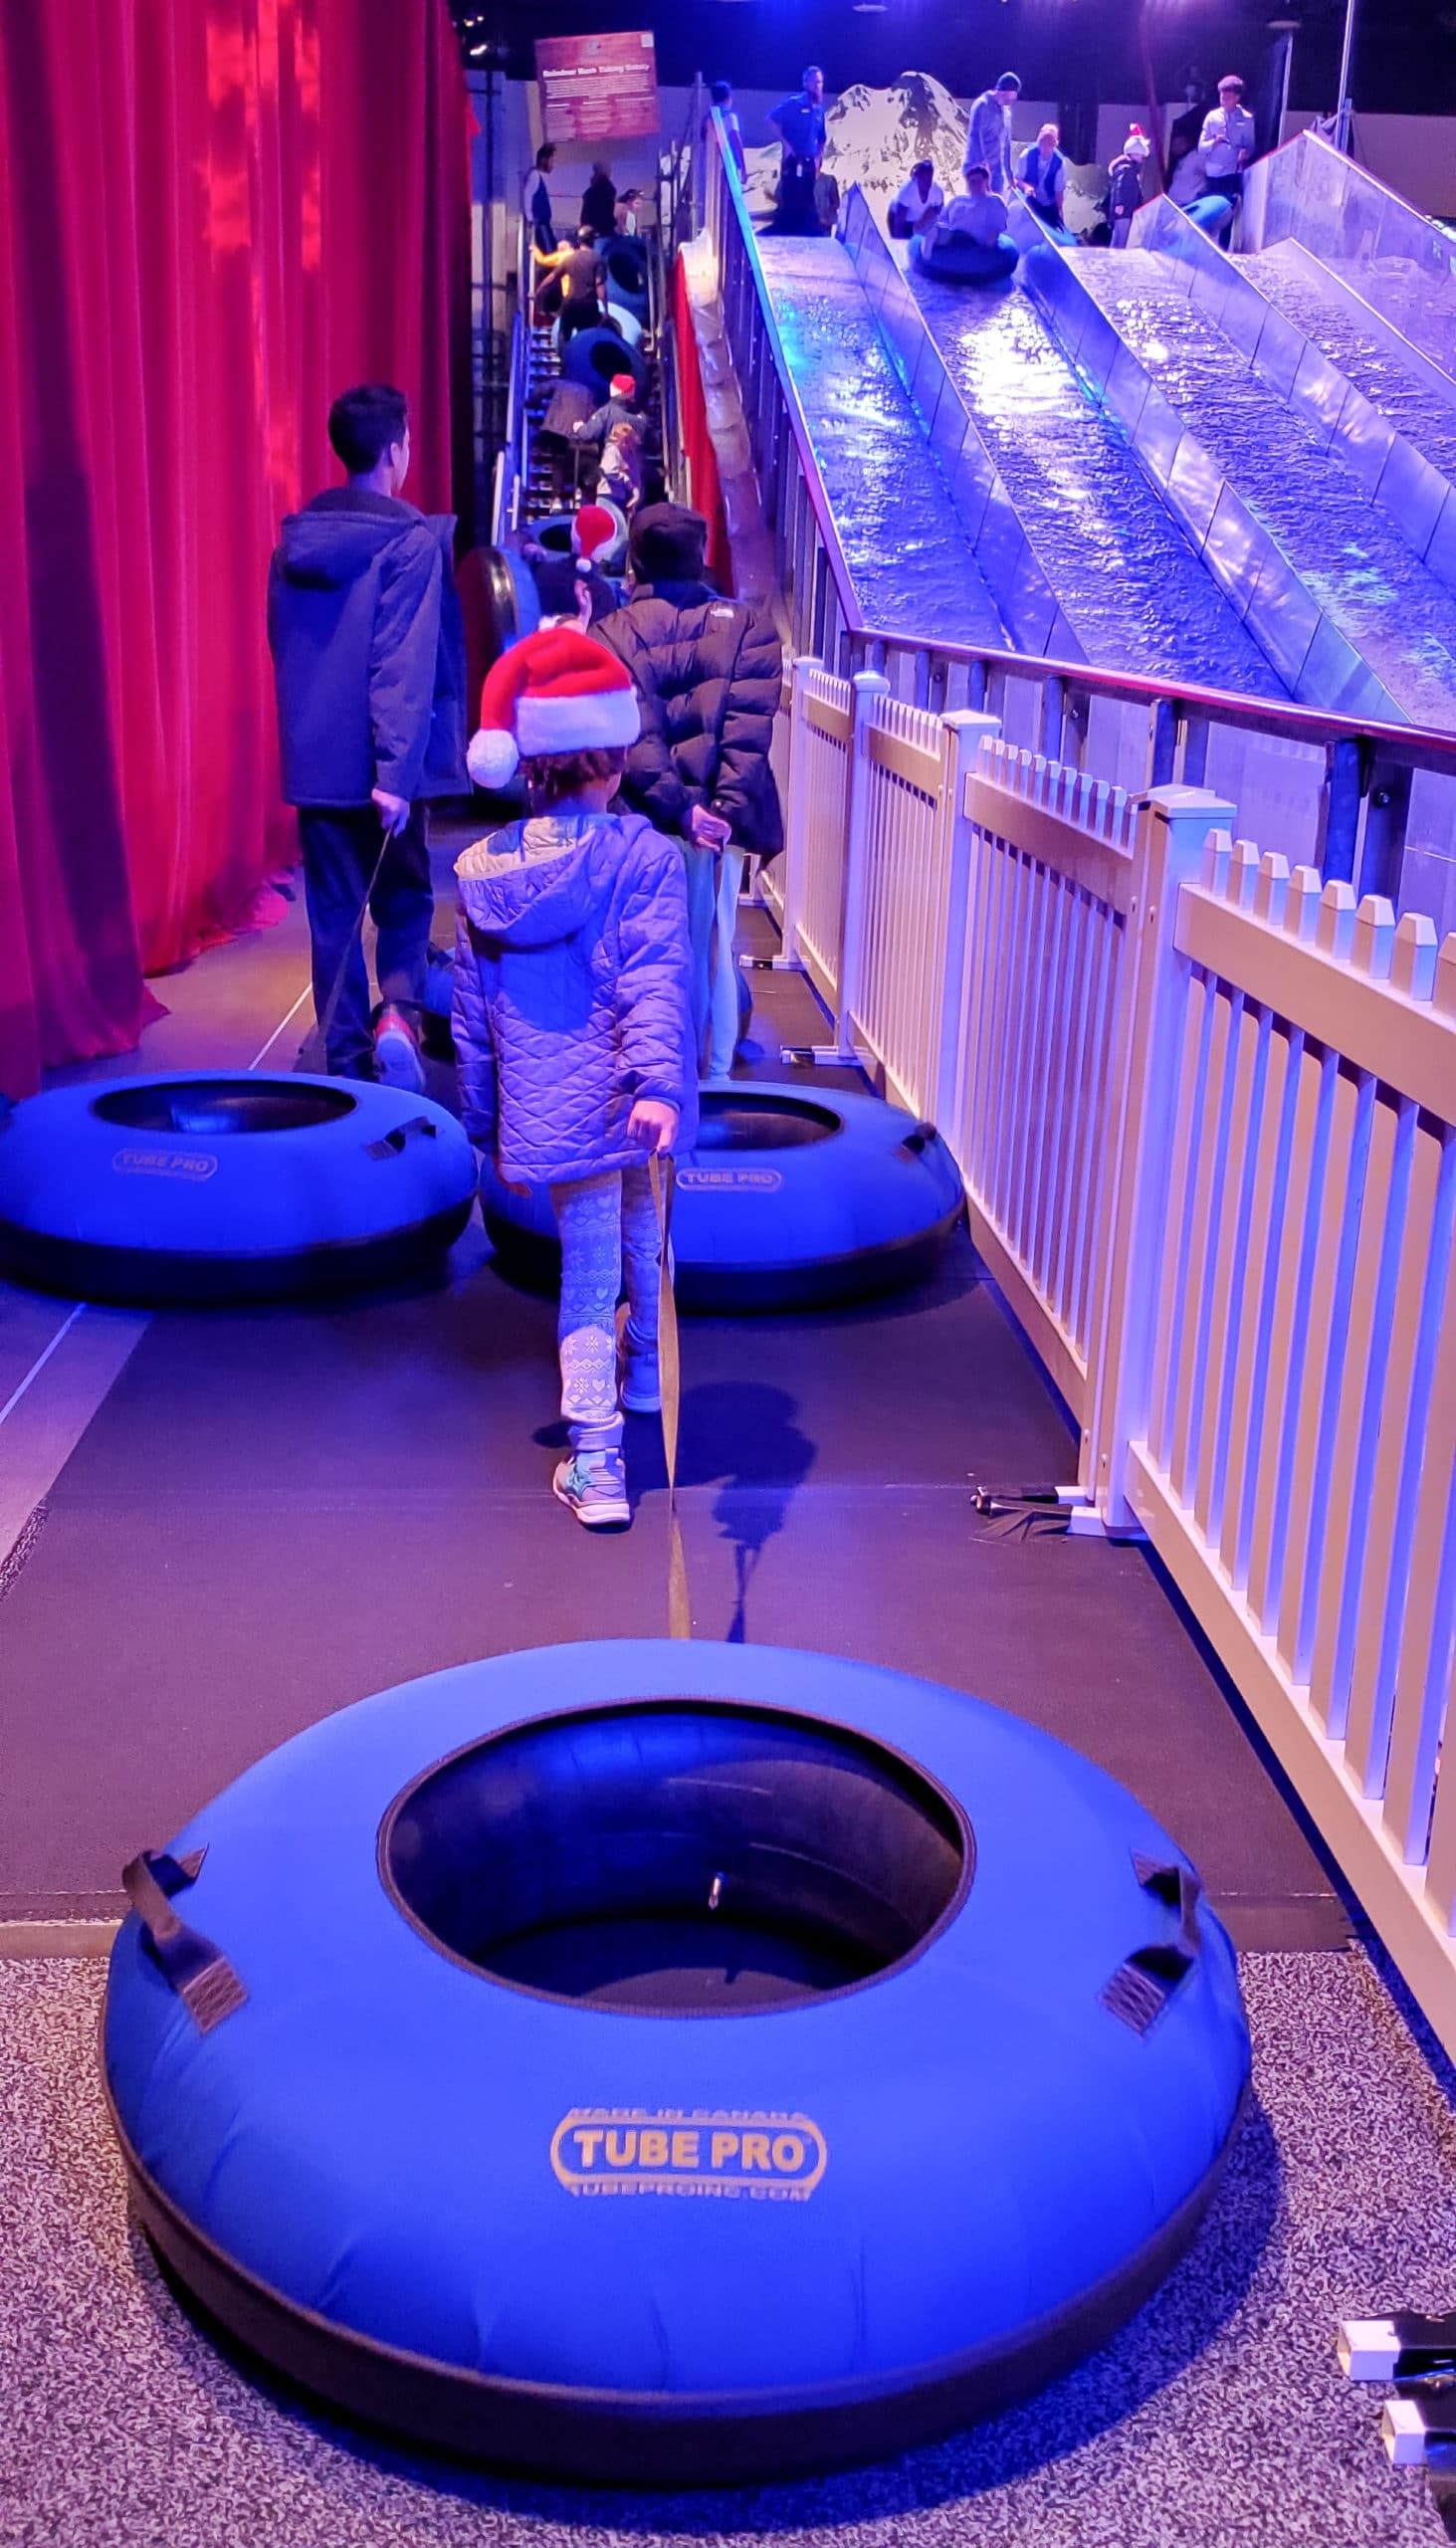 Reindeer Rush Ice Tubing Esuun. Hold on to your hats guys, reindeer aren't the only ones who can soar! Feel the rush as you slide down the Christmas Village's NEW Reindeer Rush Ice Tubing hill.